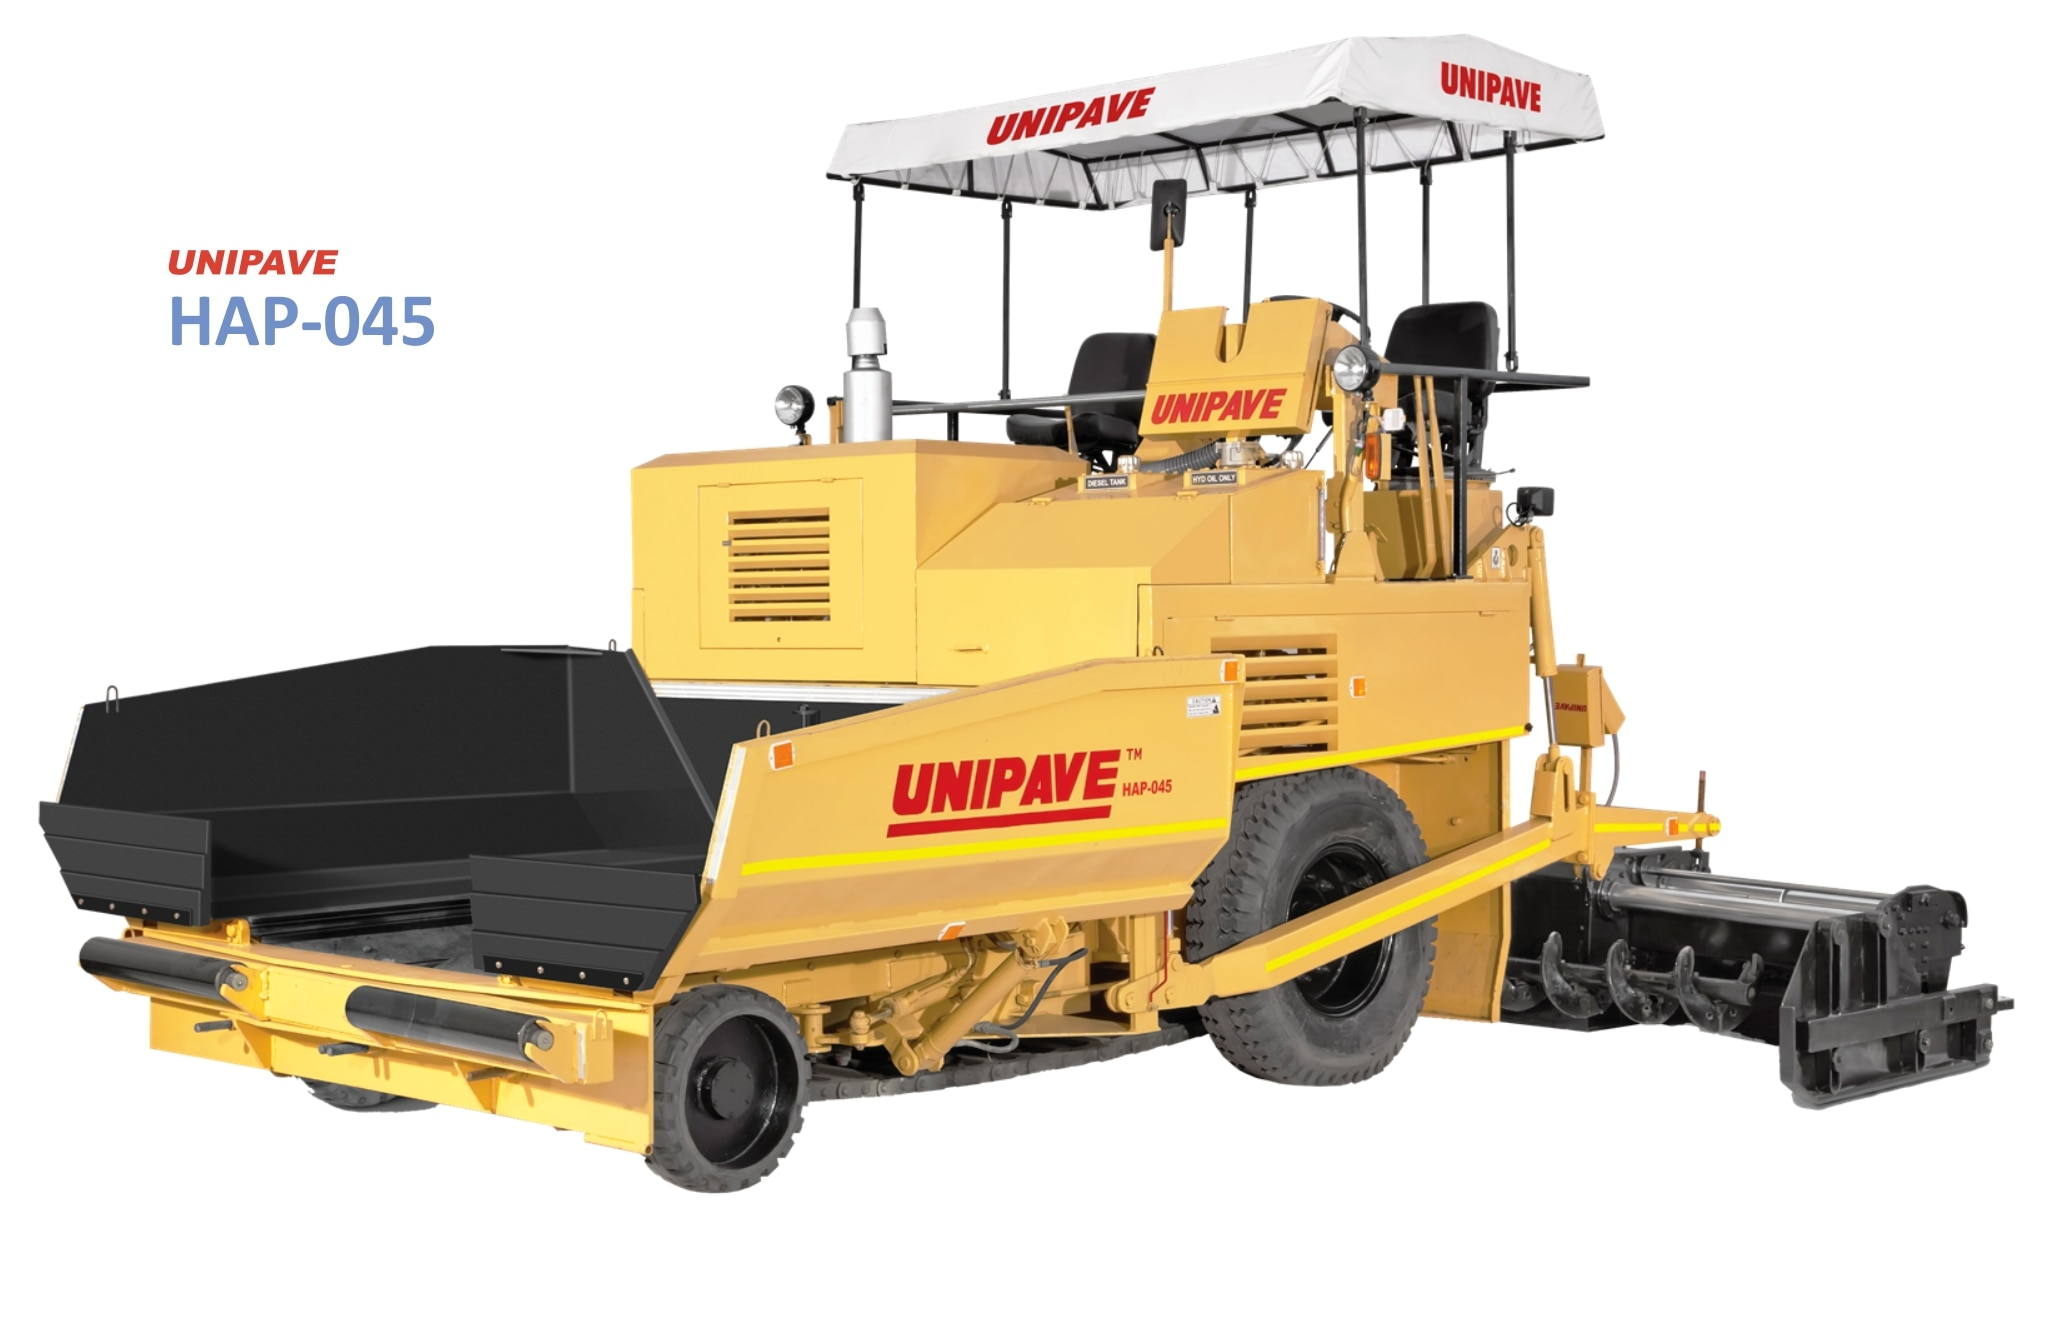 Unipave Mechanical Paver with Hydraulic Drive & Conveyor System working at Amreli, Gujarat.  HAP-045 with Hydraulic Drive & Conveyor Drive is a mechanical paver finisher developed to provide better performance at low maintenance cost. It offers ease of operating and maintaining it. Smaller, stronger, and economical mechanical paver finisher model HAP-045's this another variant comes with hydro-static transmission, hydraulic drive for conveyor, sliding type control panel, dual operator seats, 2 nos. rear wheels, hydraulically extendable screed with vibration and heating facility. Hydraulic Conveyor system increases output and reduces maintenance. Auto Limit Control Switch helps to control material flow automatically. HAP-045 has basic screed of 2.5 meters width and it is hydraulically extendable up to 4.5 meters.   For more details contact us at 9879533291.